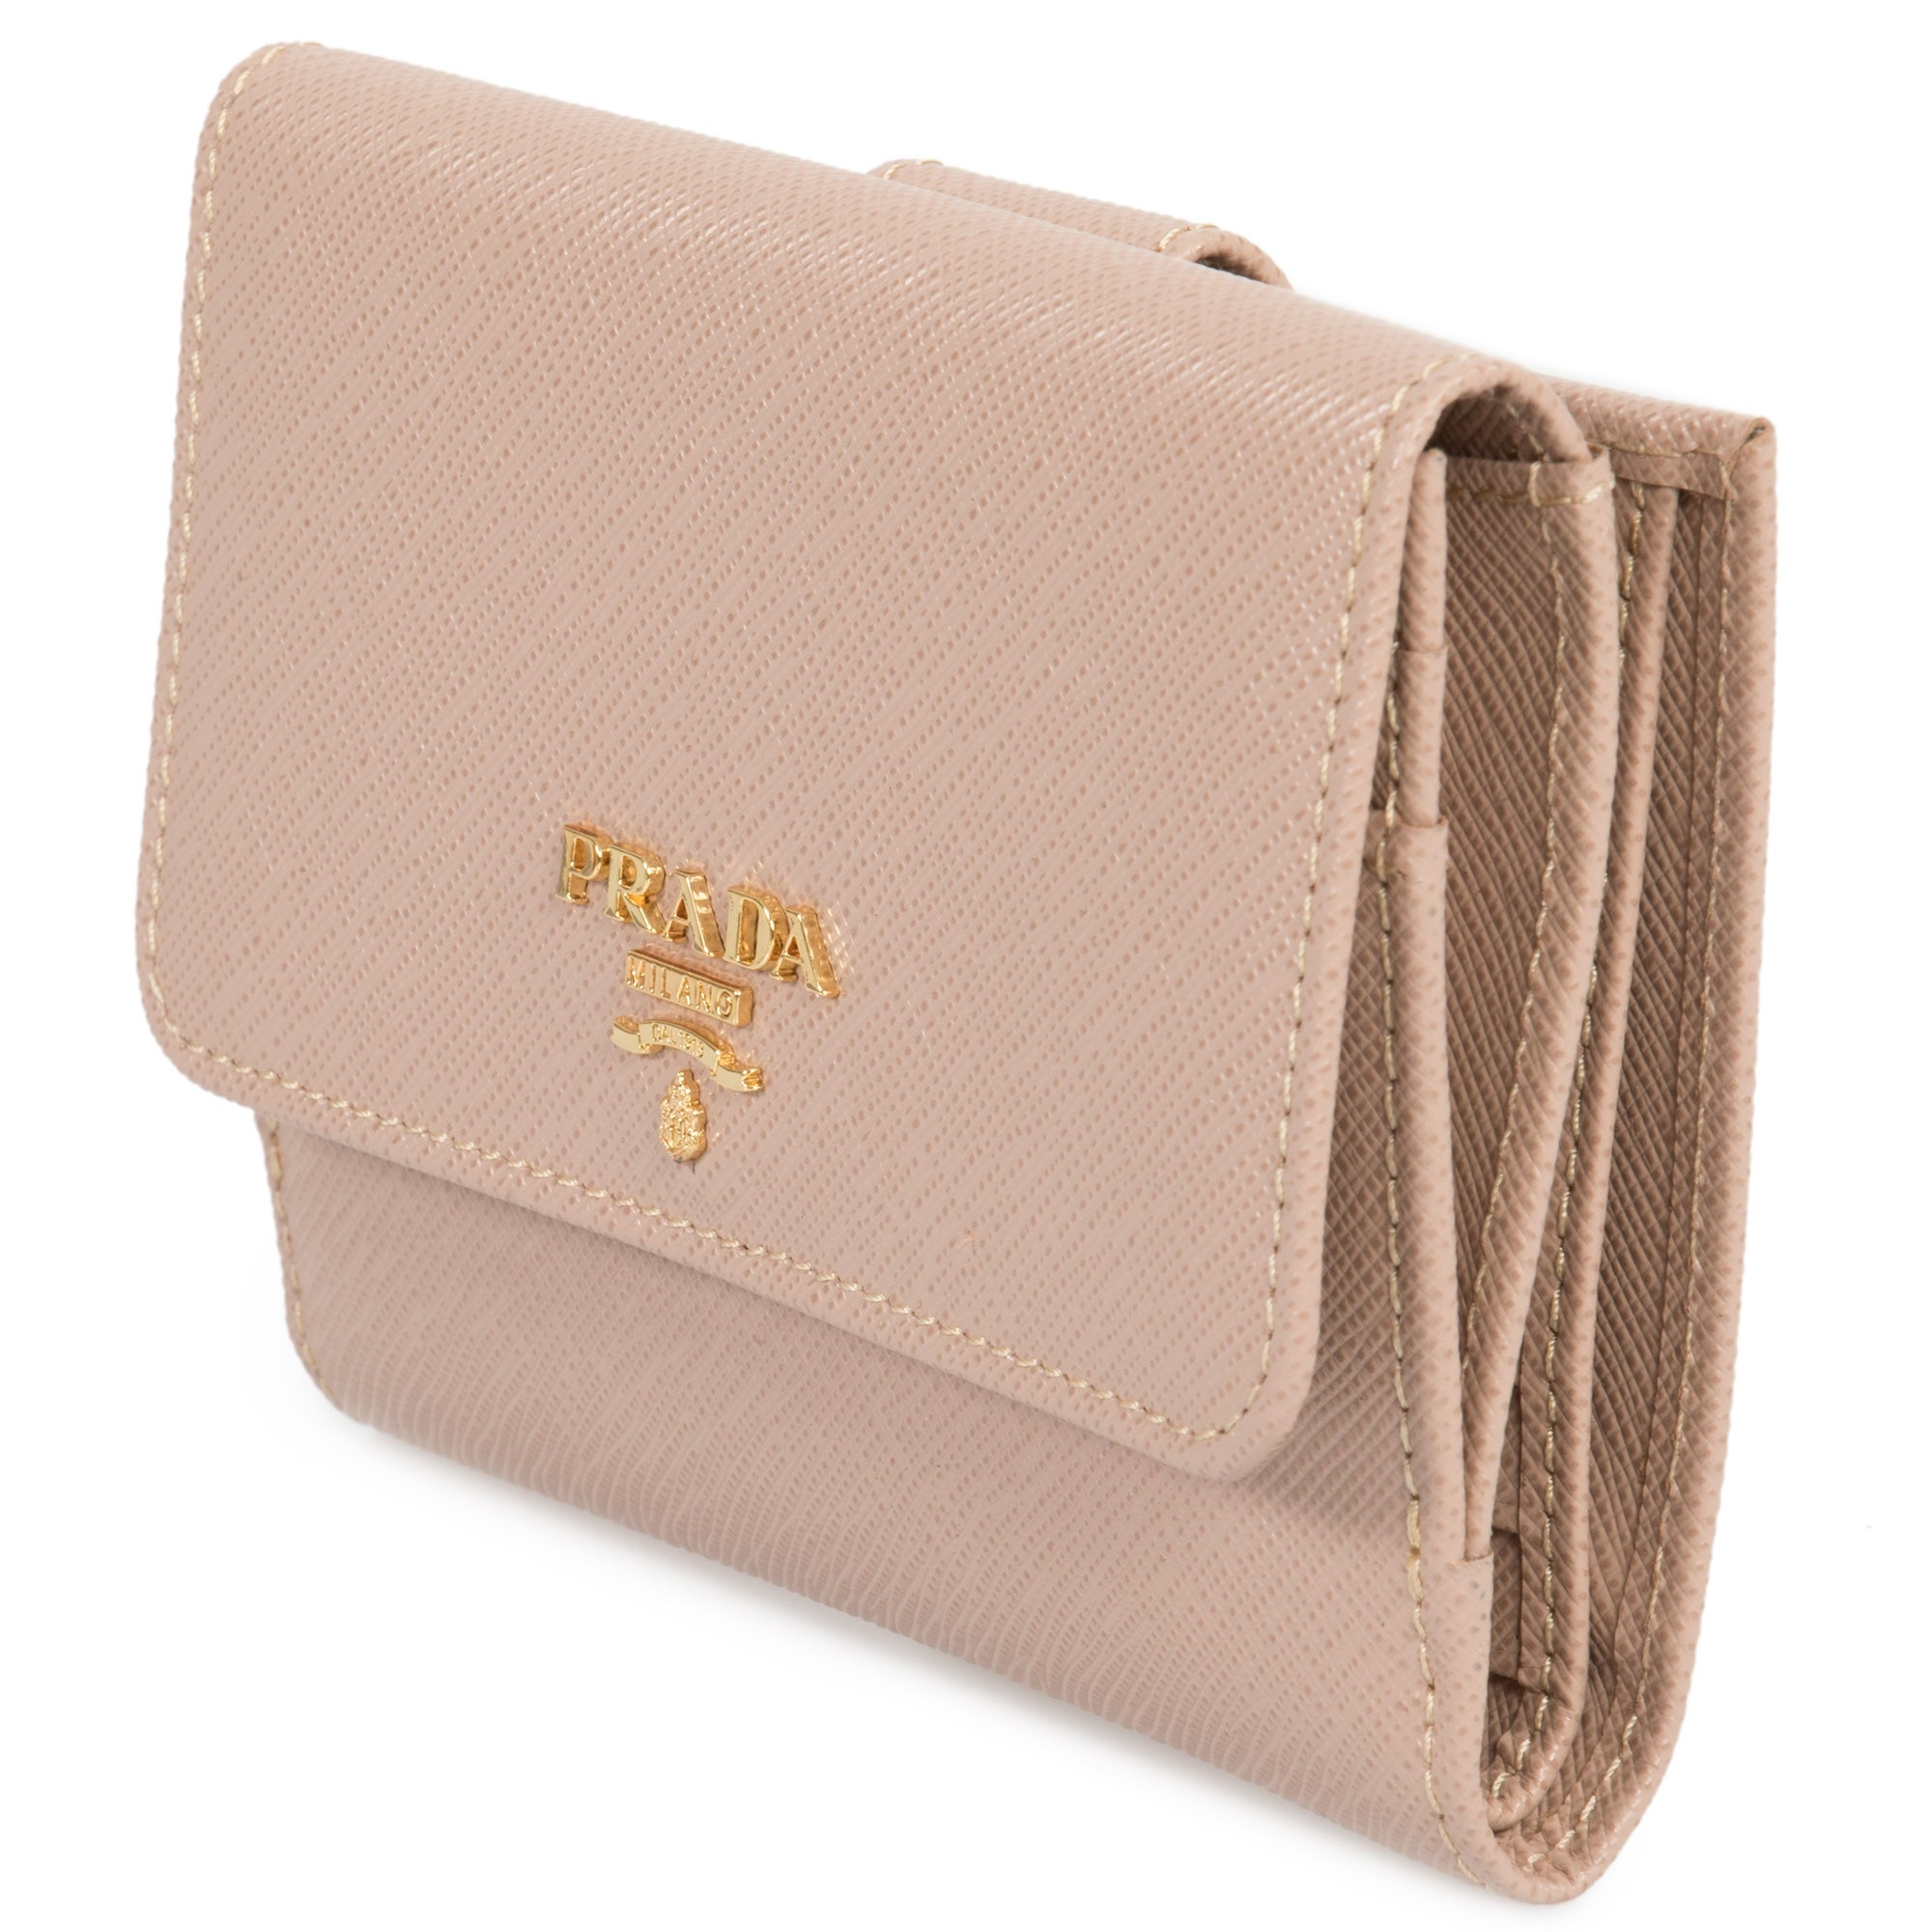 5dd447c6dc29 Shop Prada Cameo Saffiano Leather Flap Wallet 1MH523 QWA F0770 - Free  Shipping Today - Overstock - 23084016